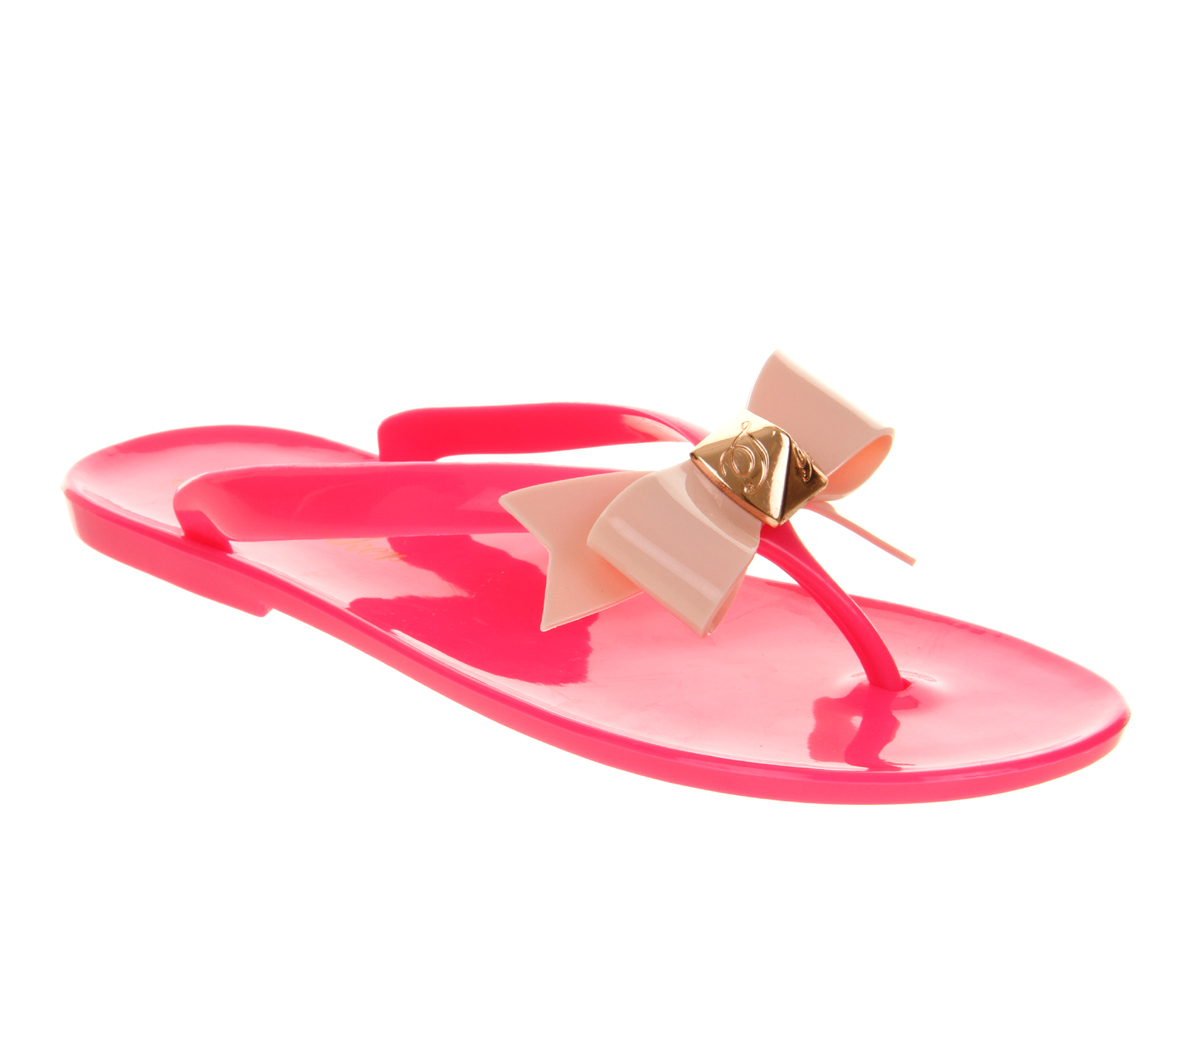 d1a37c1f2 Womens Ted Baker Polee Flip Flop Pink Light Pink Pvc Sandals